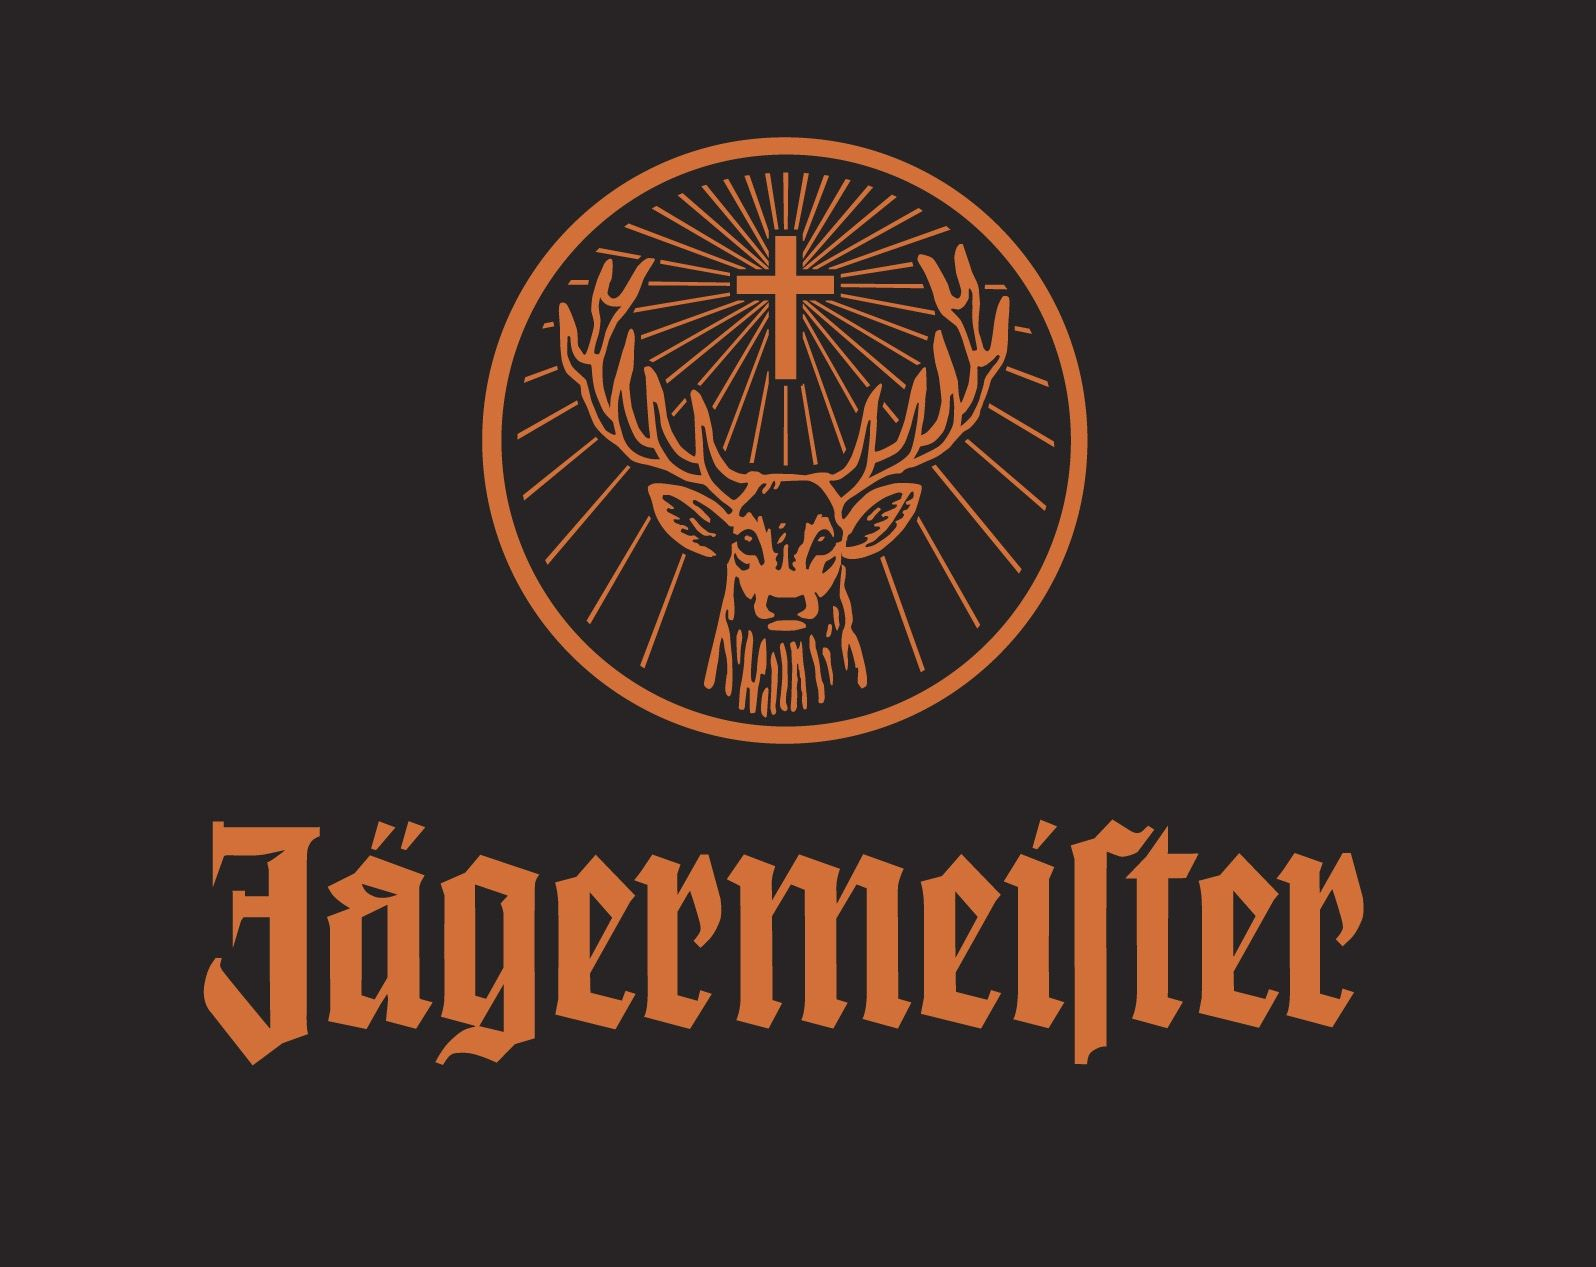 Jagermeister Font Crafty In 2018 Pinterest Drinks Logos And